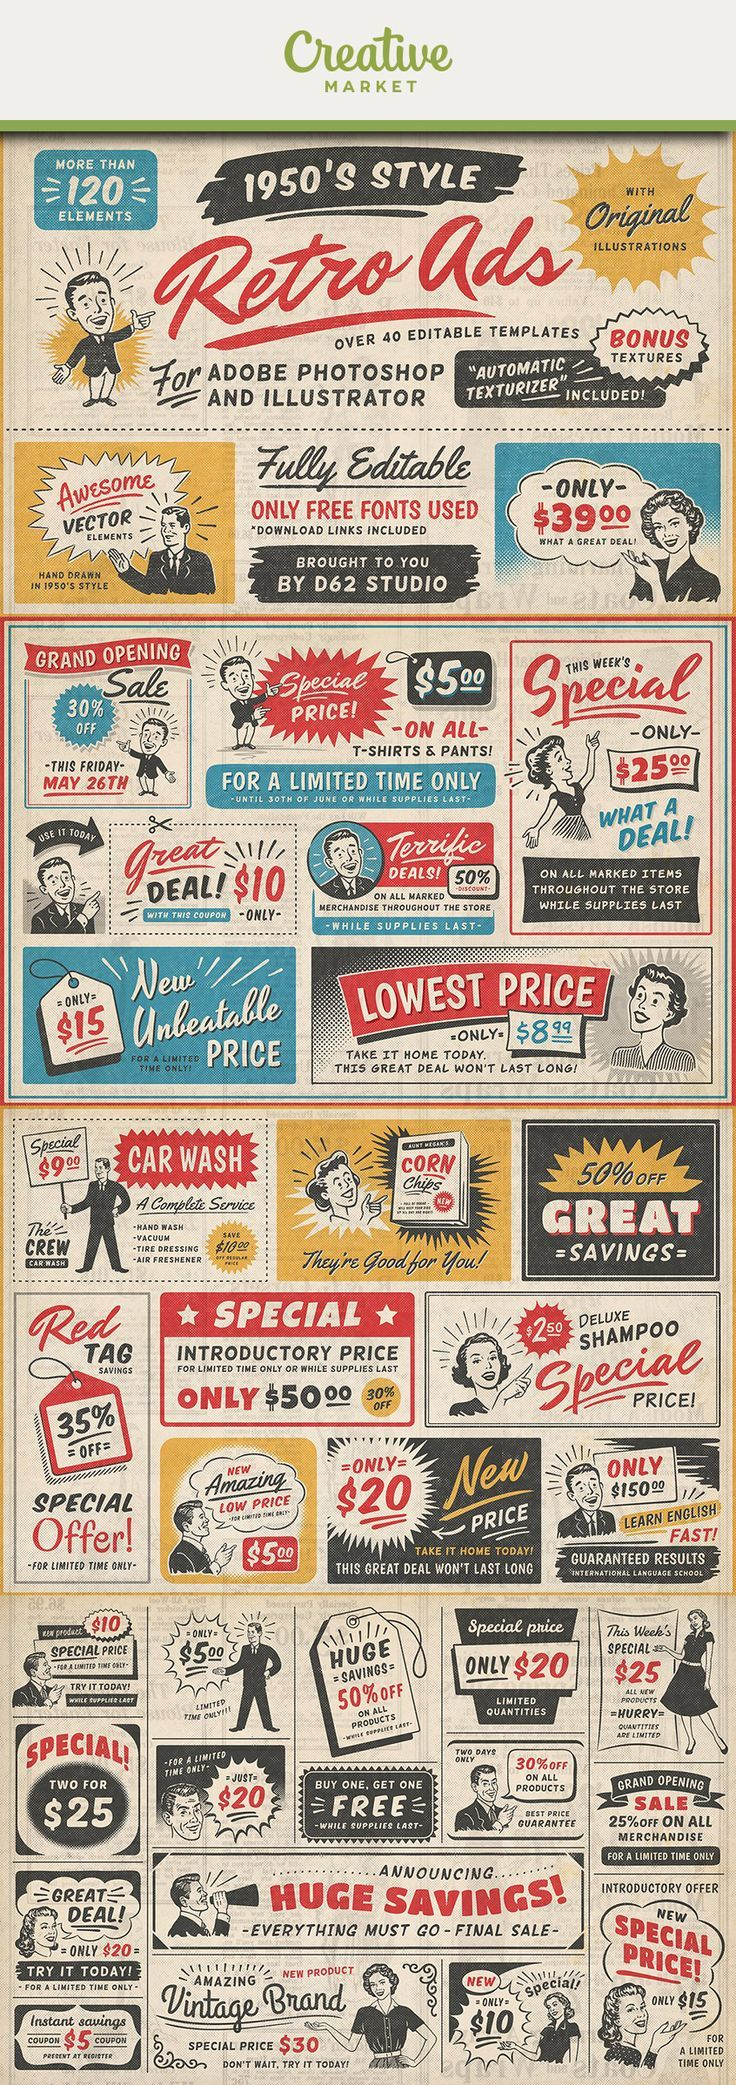 "Ad: 1950s style retro ad templates featuring ORIGINAL illustrations with our ""Automatic Texturizer"" Photoshop effect preset and bonus textures. Includes, Illustrator, Photoshop and PNG files. Easily editable with only free fonts used. For 39$ on Creative"